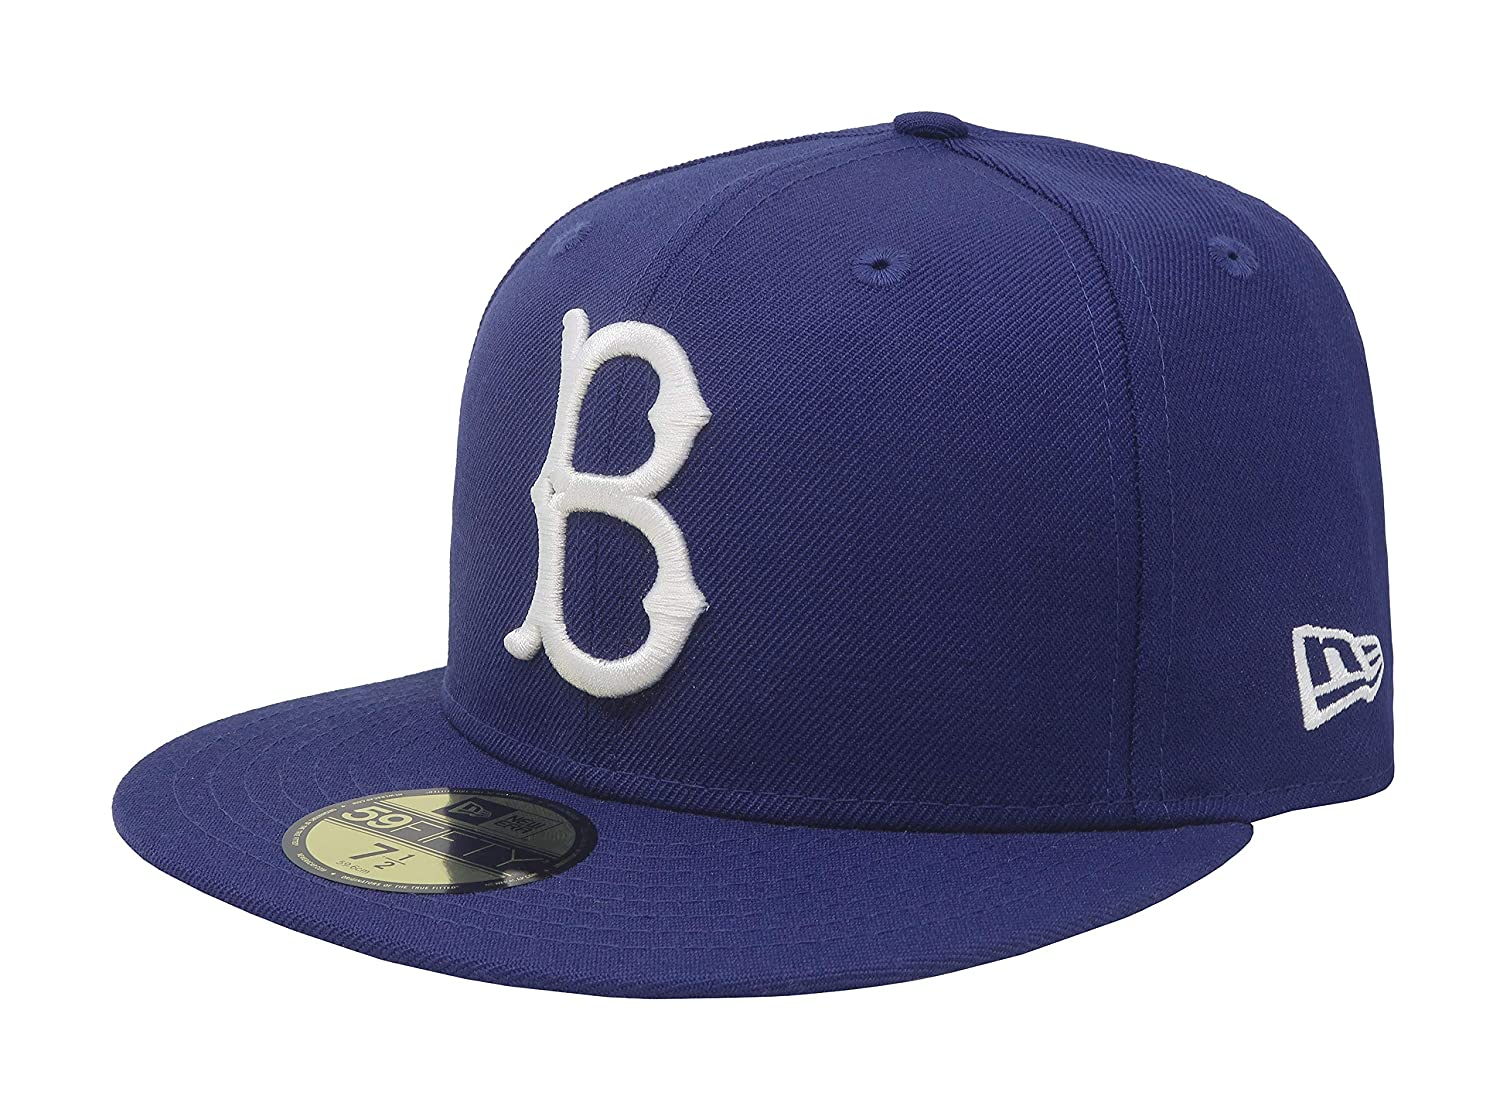 Amazon.com  New Era 59Fifty Hat Brooklyn Dodgers Cooperstown 1949 Wool  Fitted Blue Headwear Cap  Sports   Outdoors c5fa6b62105